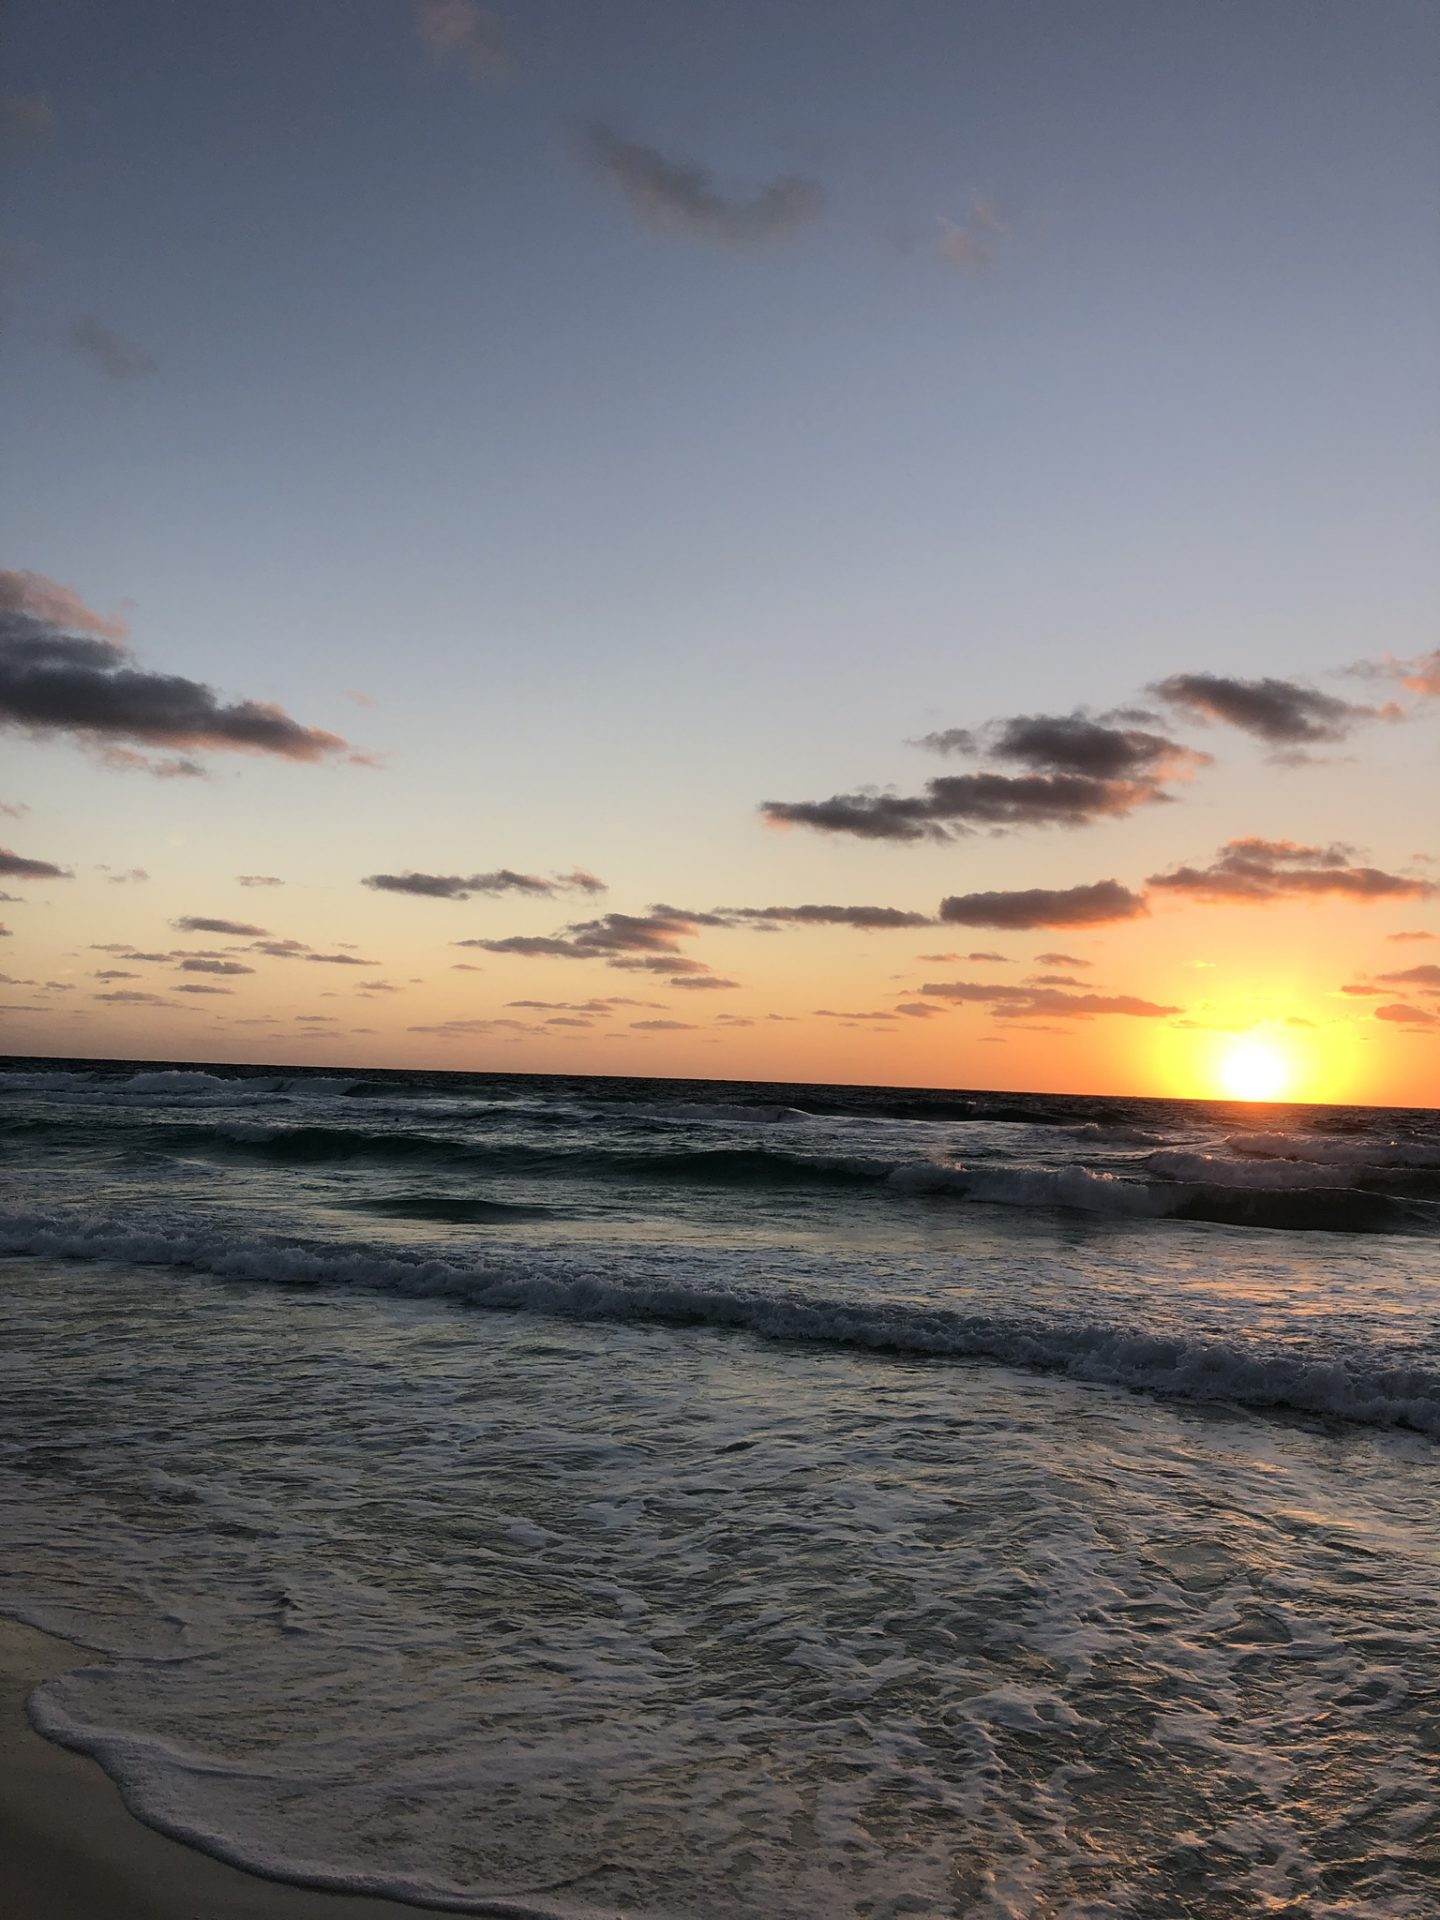 Sunrise on the beach in Cancún